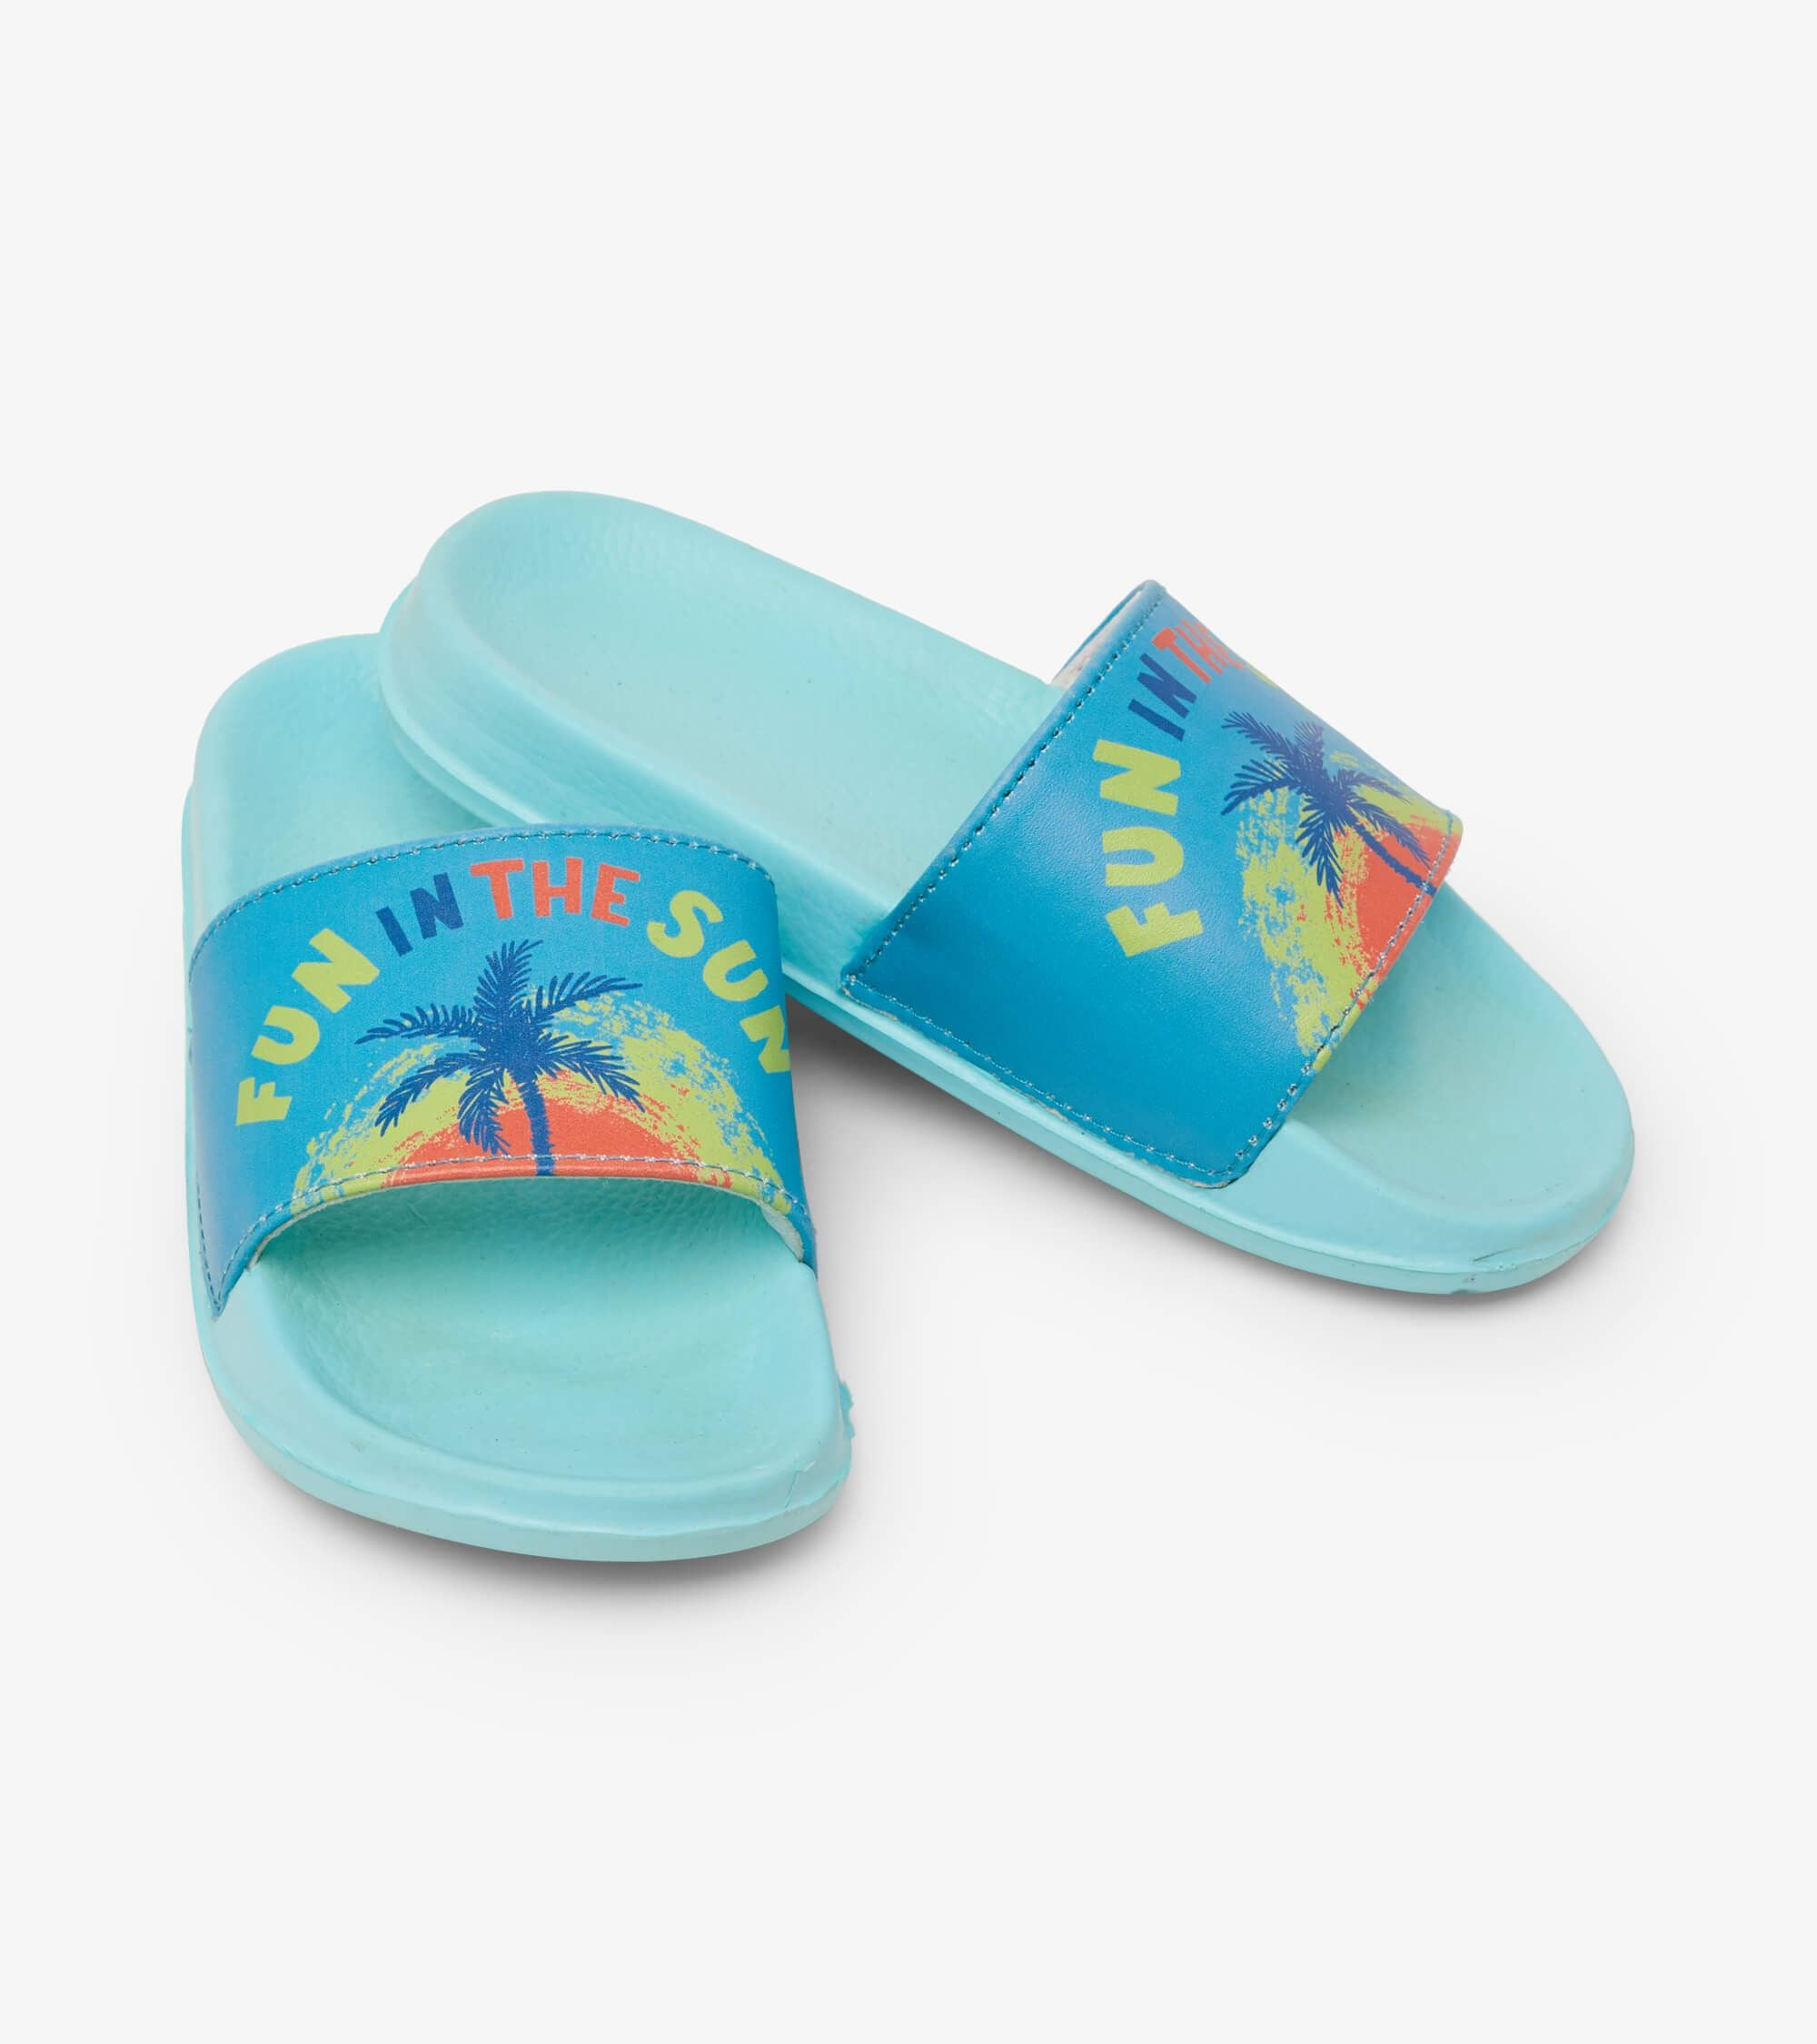 Fun In The Sun Slide On Sandals - Aruba Blue